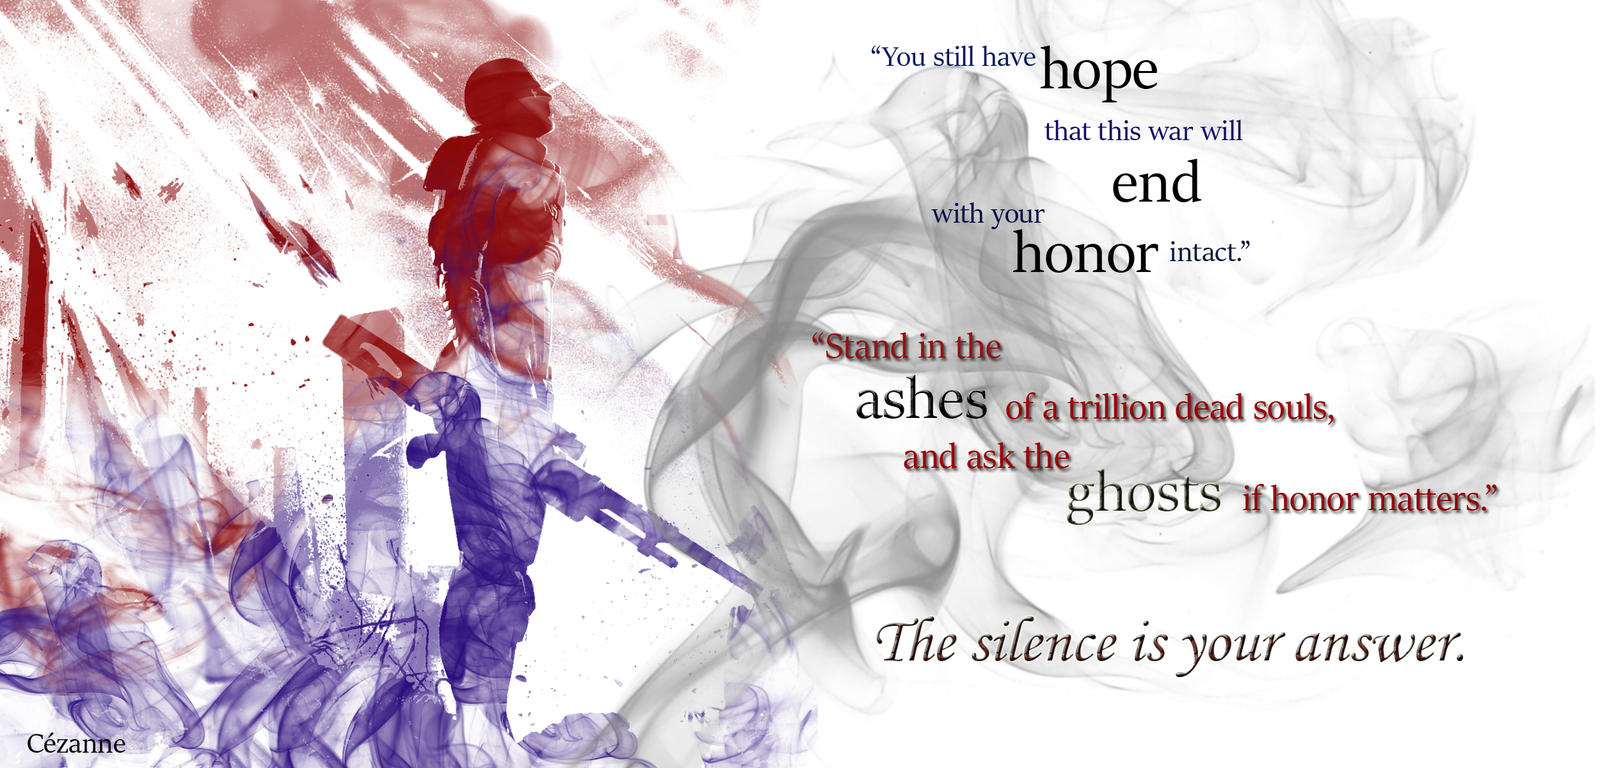 Mass Effect Quotes By Mg Cezanne On Deviantart